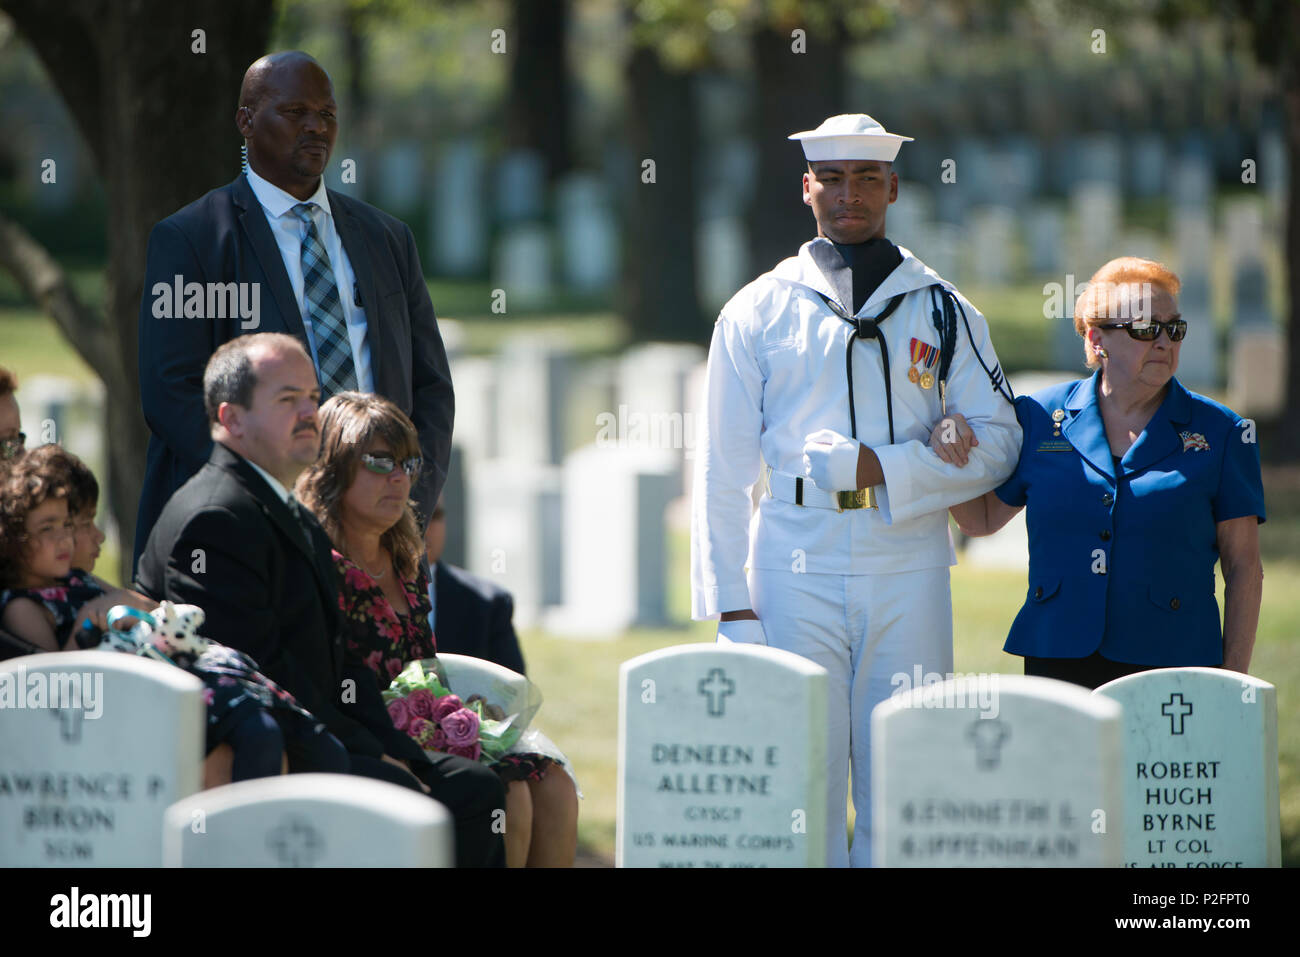 Arlington Lady Paula McKinley, right, and Seaman Andre Holloman, her escort,  participate in the graveside service for U.S. Navy Capt.